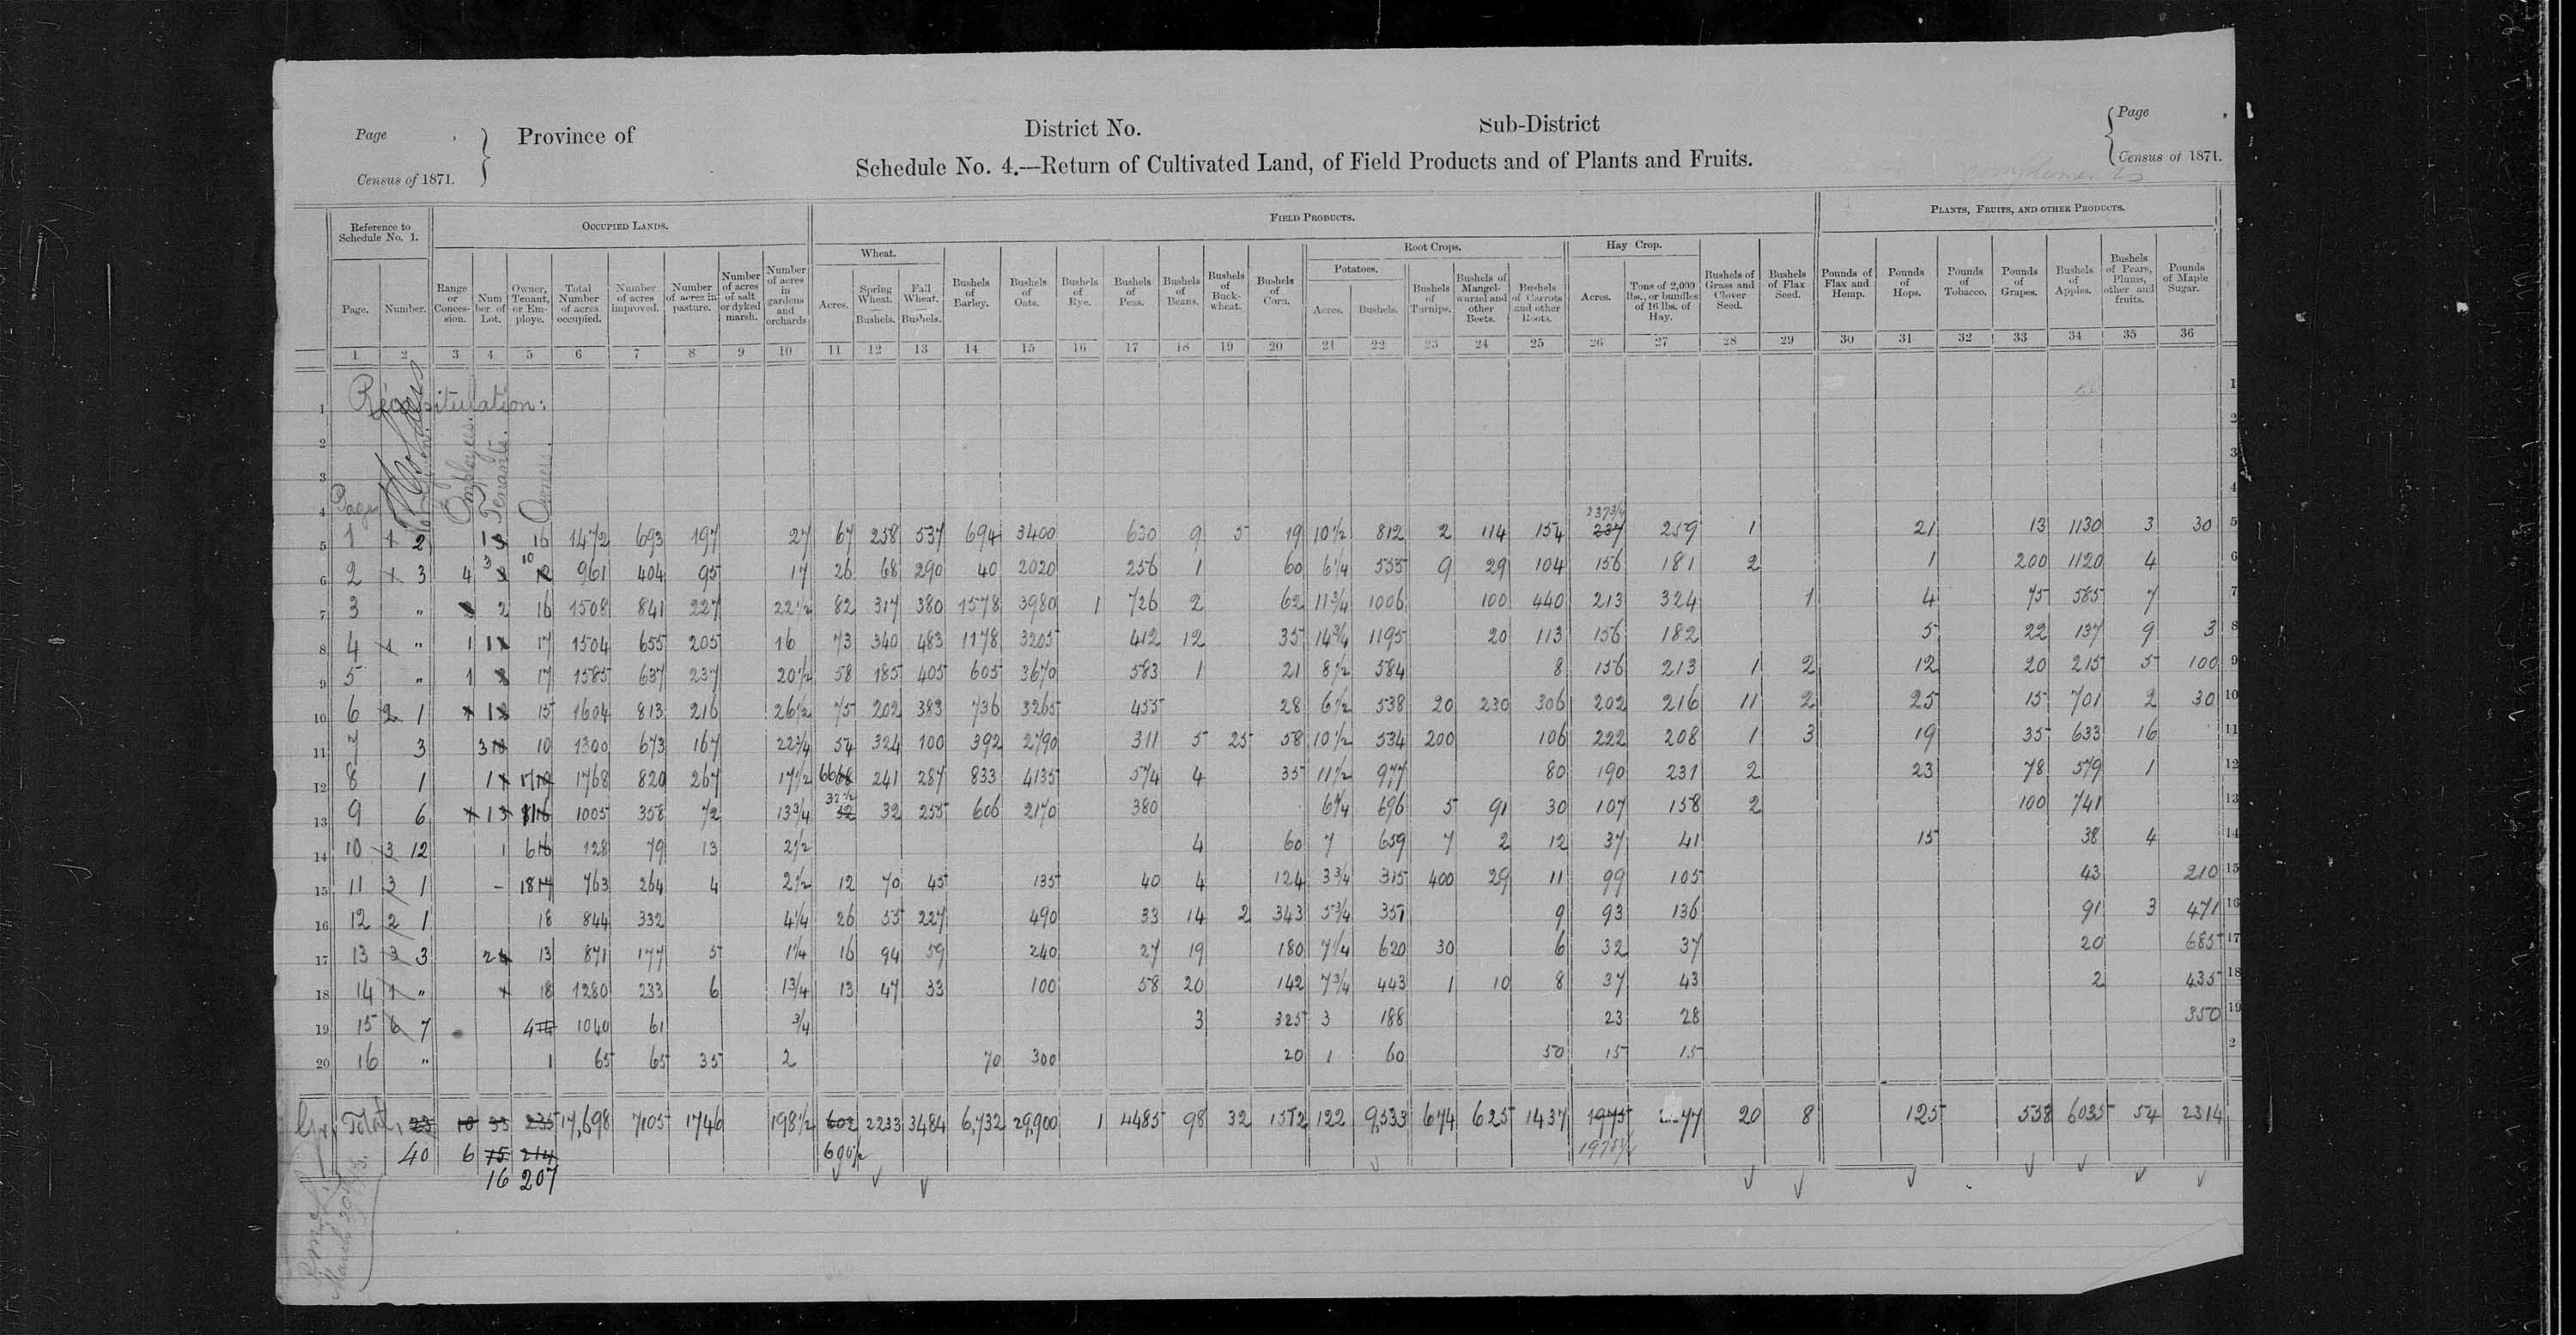 Title: Census of Canada, 1871 - Mikan Number: 142105 - Microform: c-9895